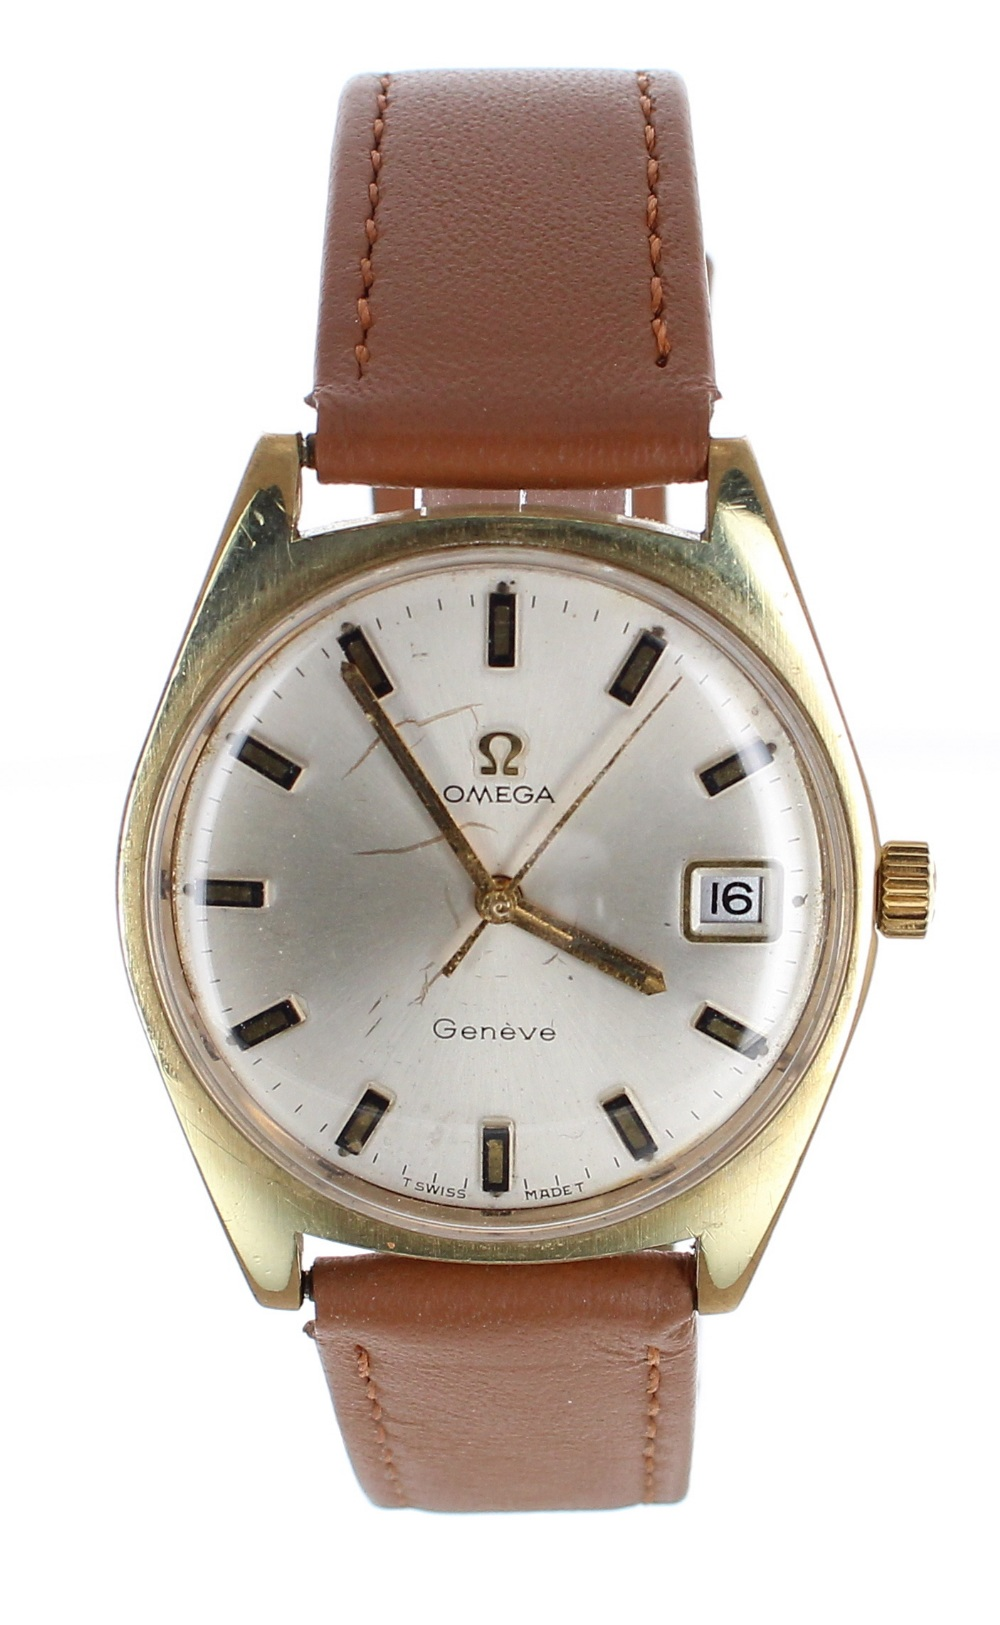 Lot 6 - Omega Genéve gold plated and stainless steel gentleman's wristwatch, ref. 136.041, circa 1970,